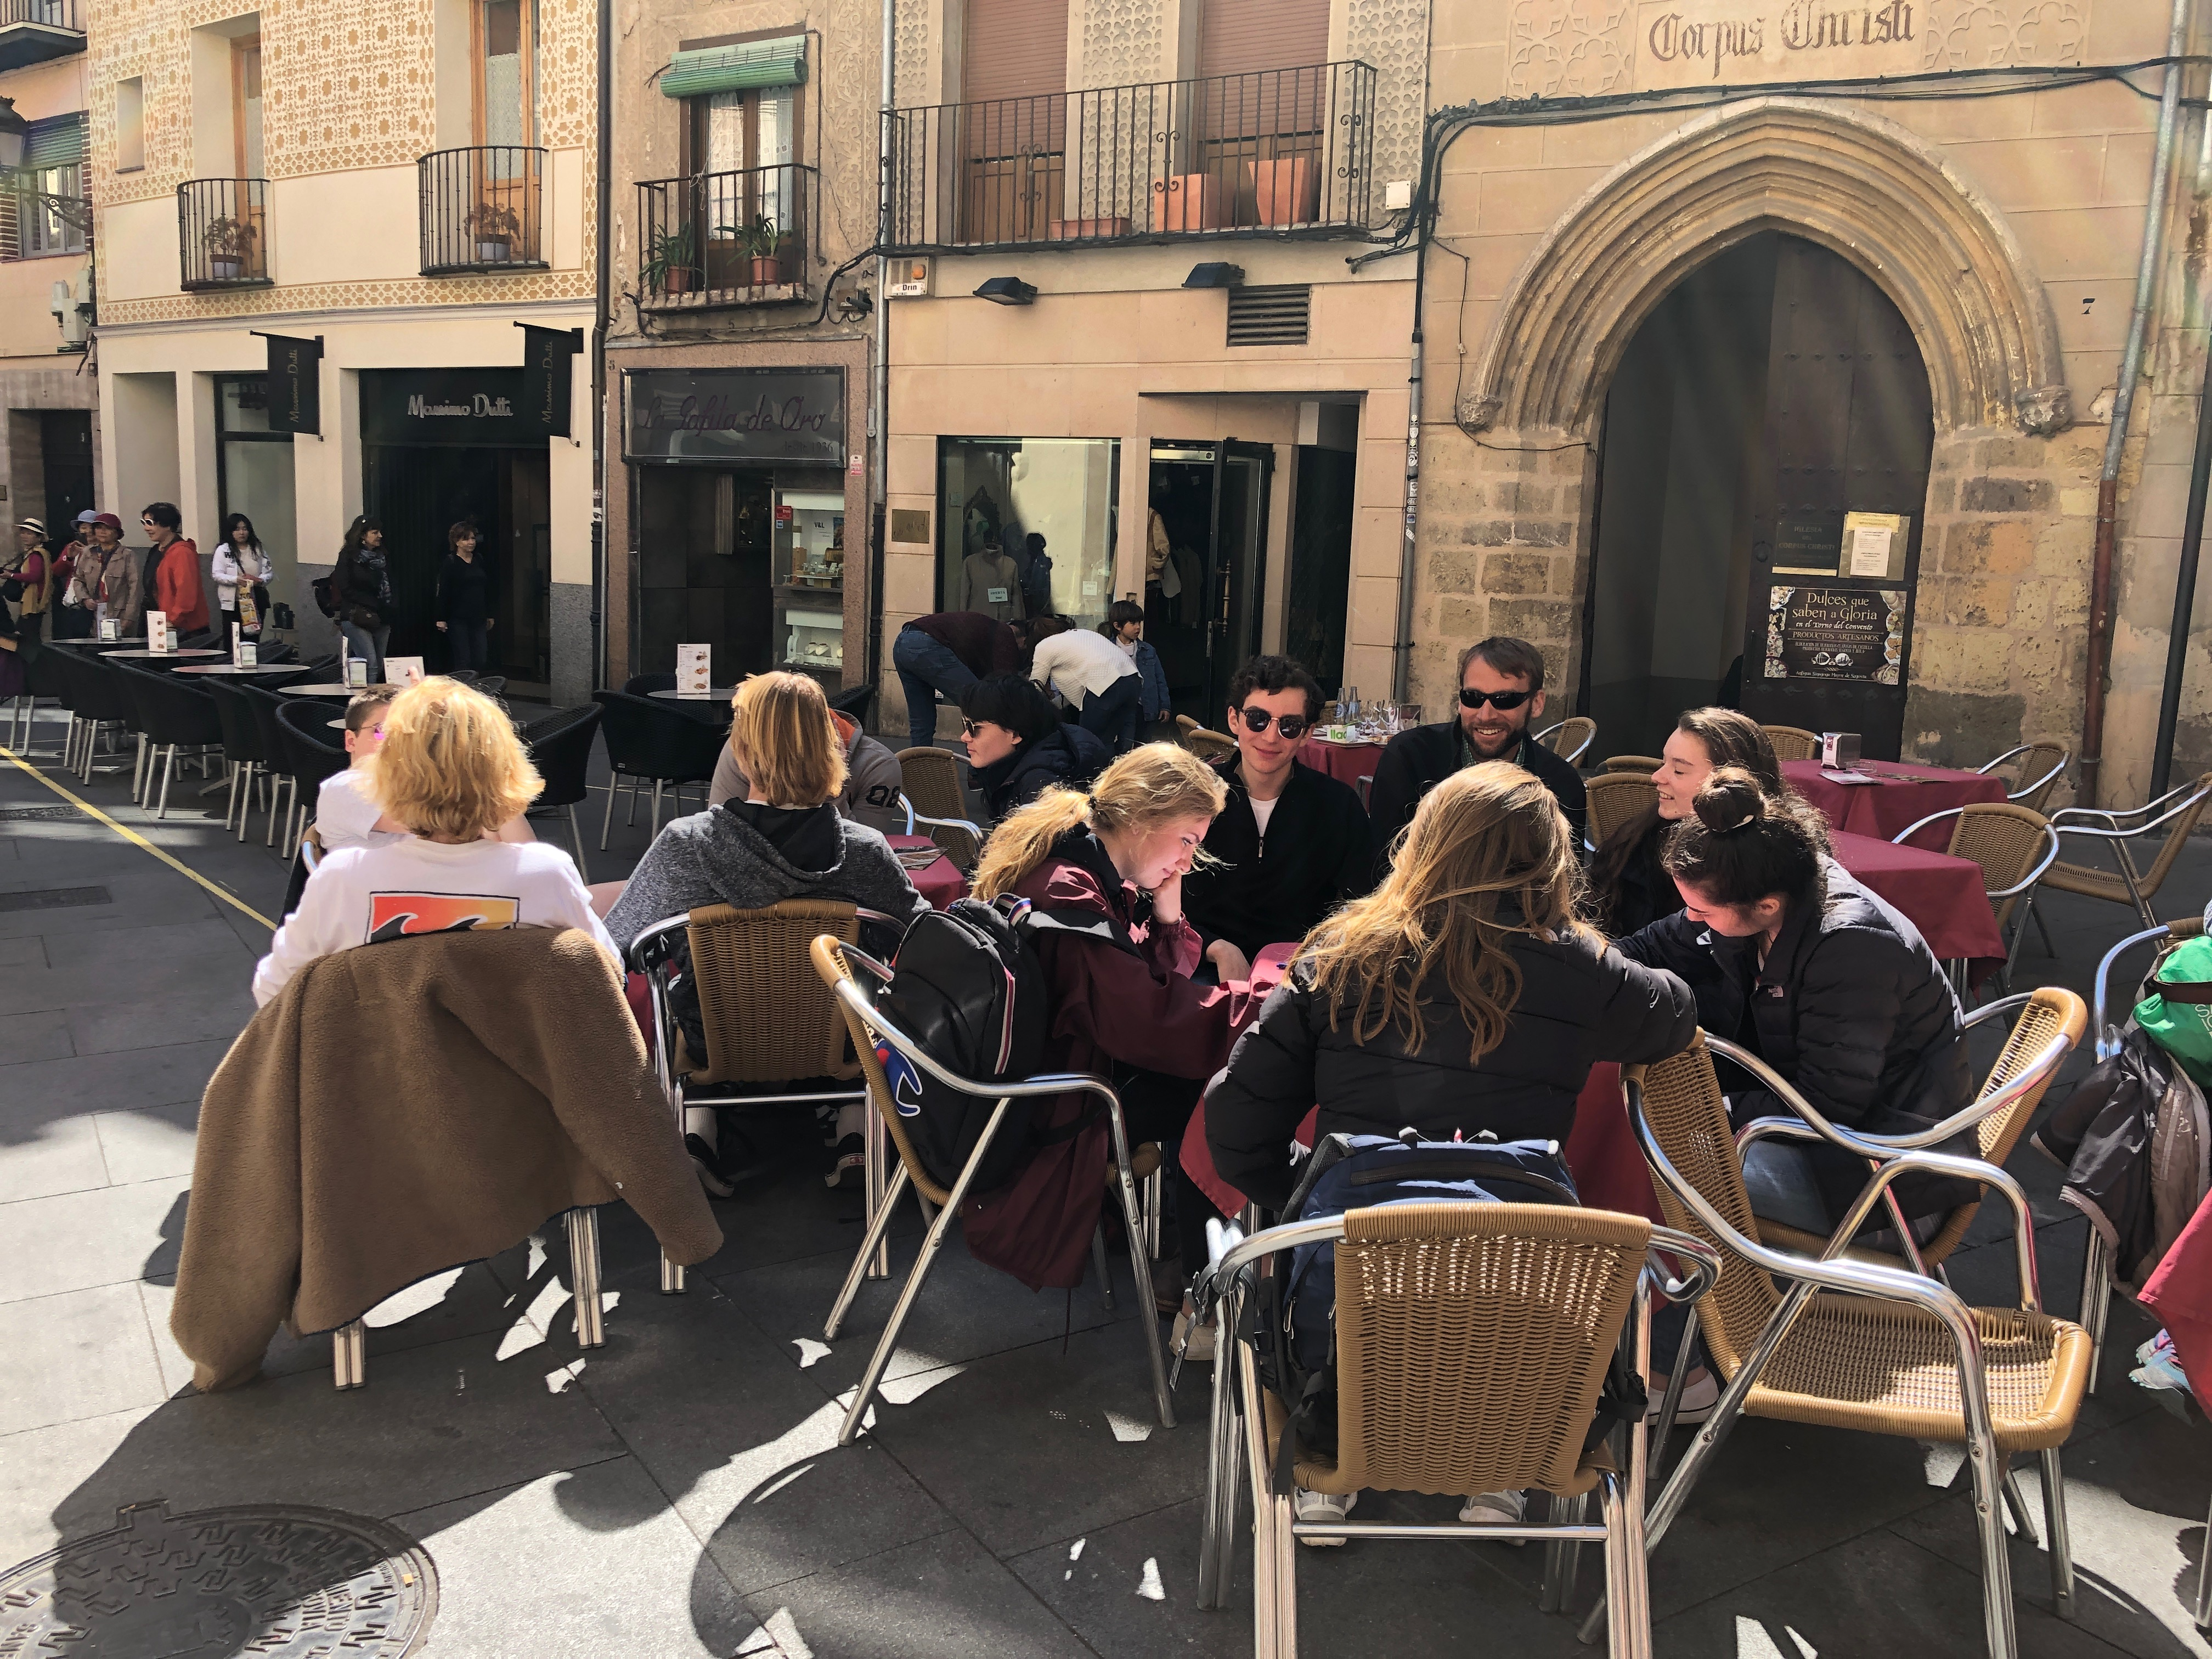 Proctor en Segovia enjoys café time